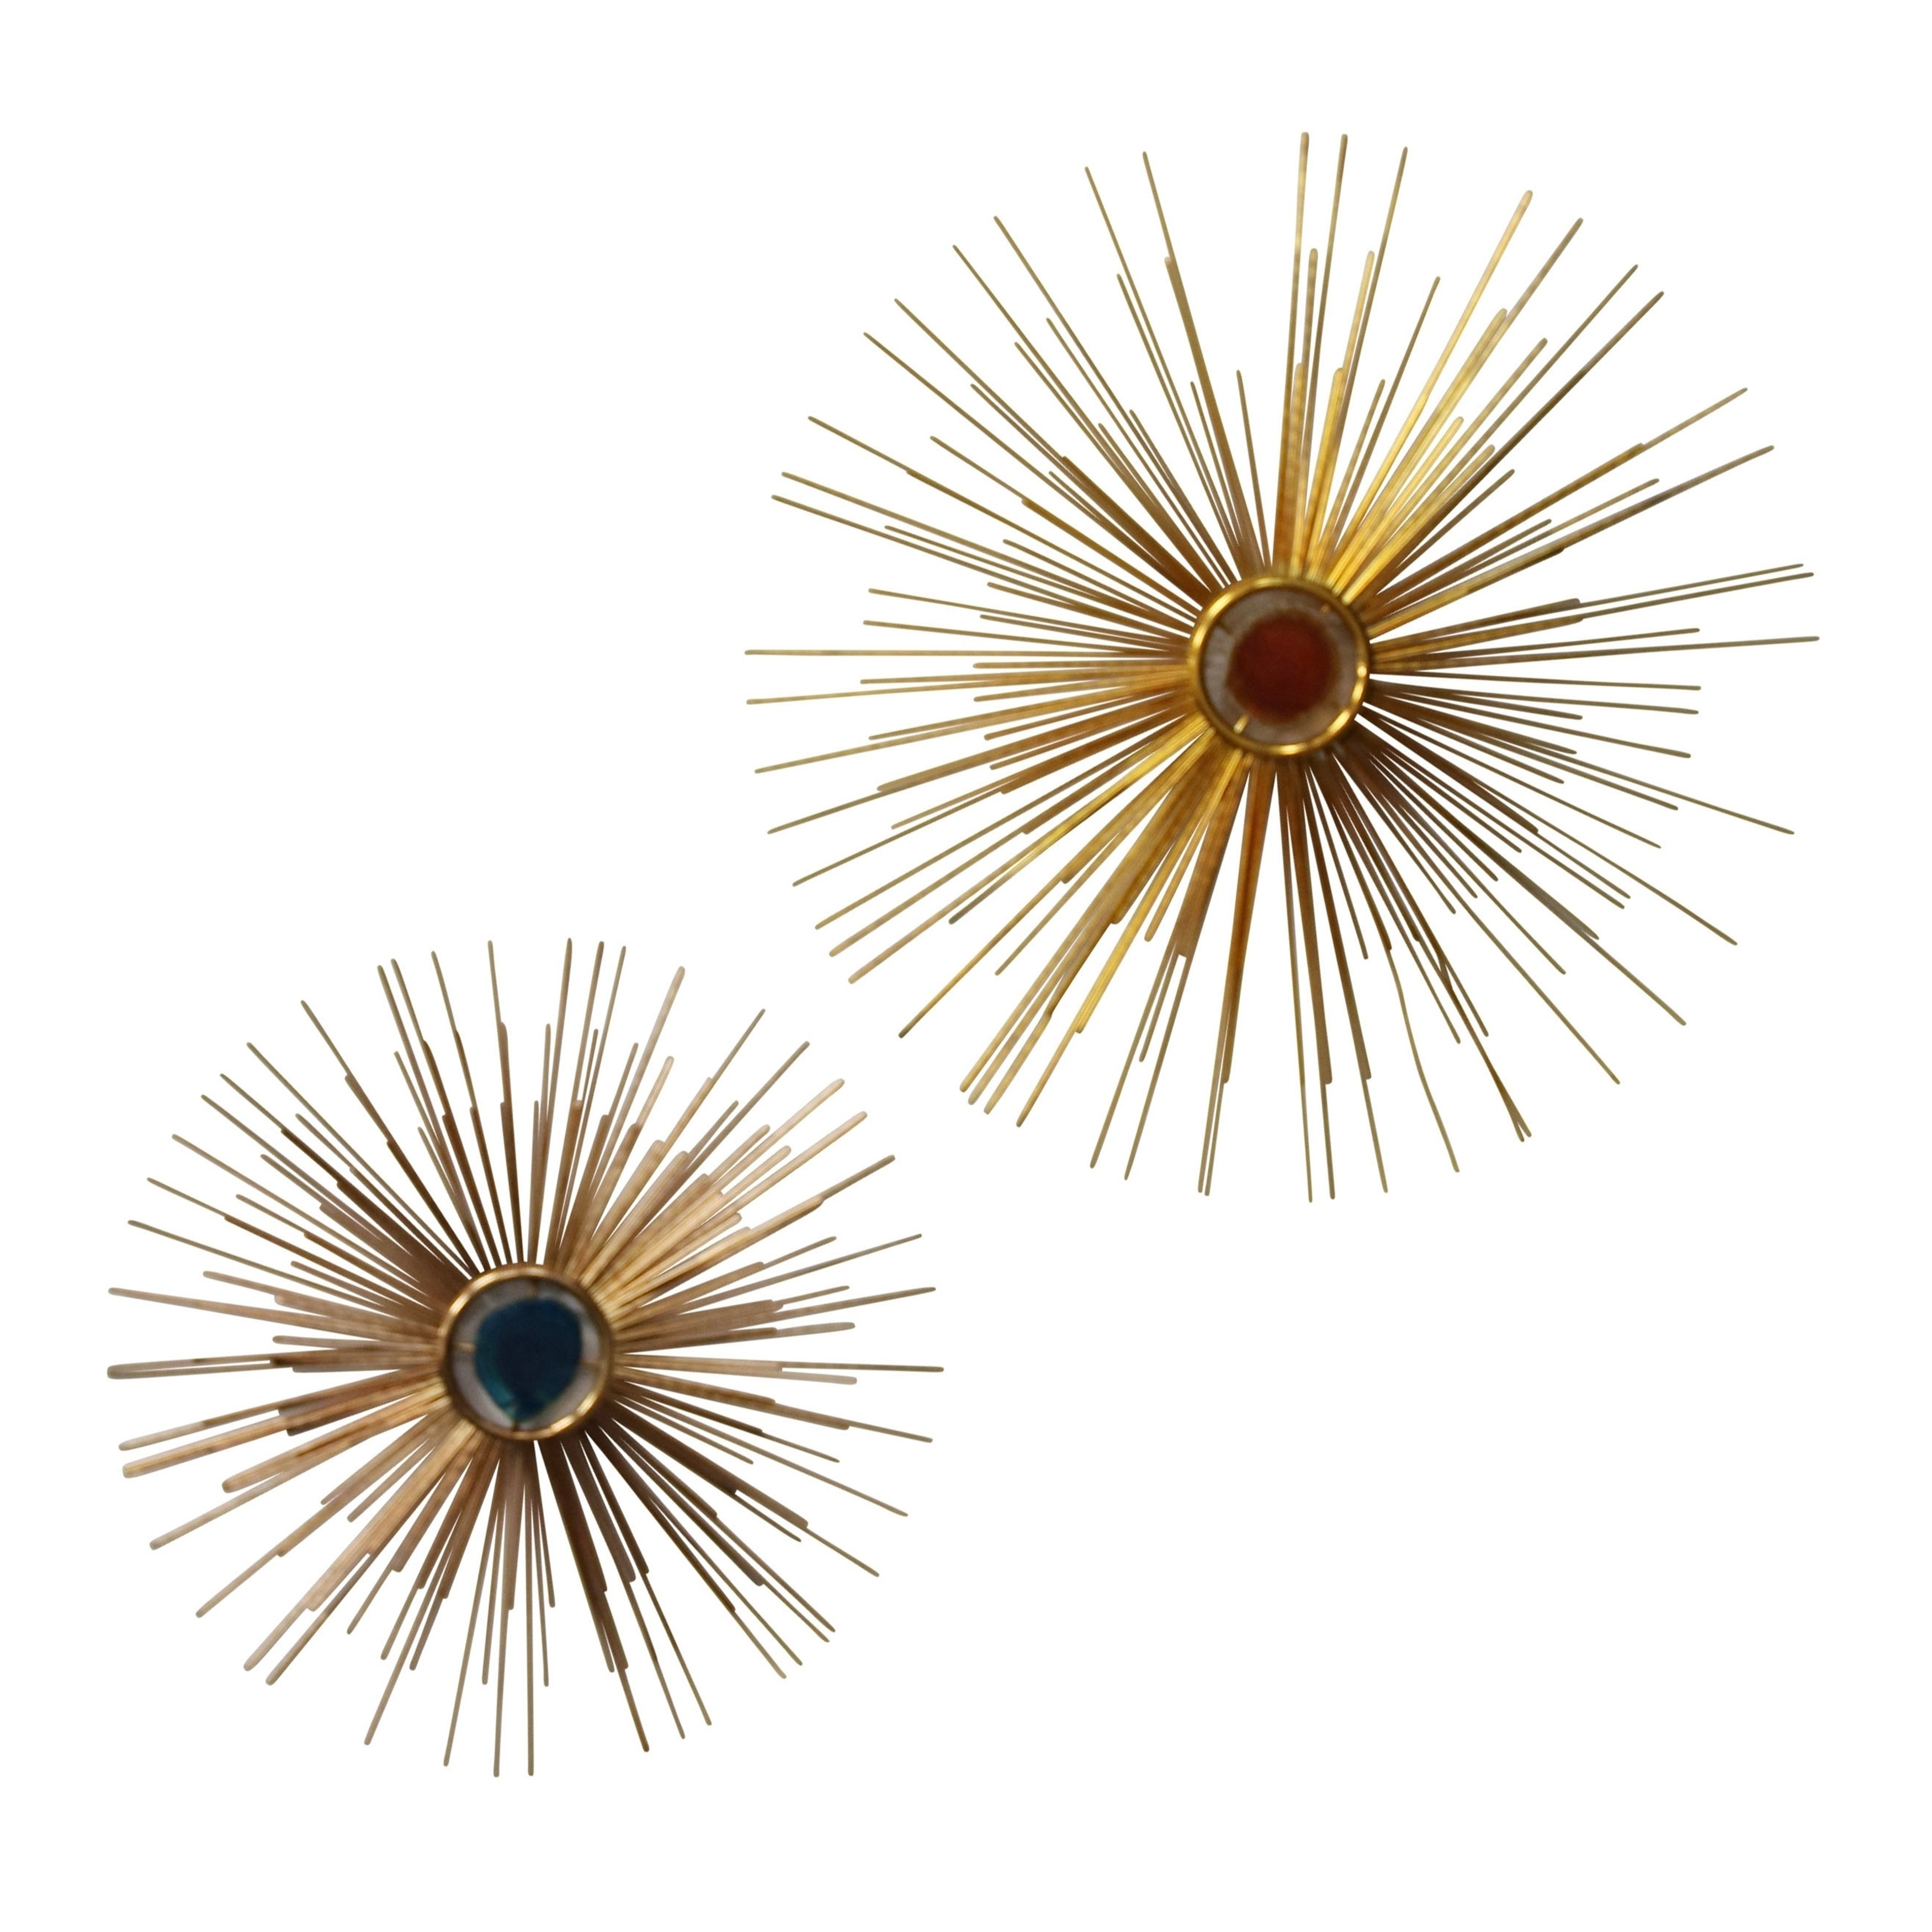 2 Piece Starburst Wall Decor Sets Pertaining To Newest Shop Starburst Gold With Colored Centers Metal Wall Décor (Set Of  (View 1 of 20)